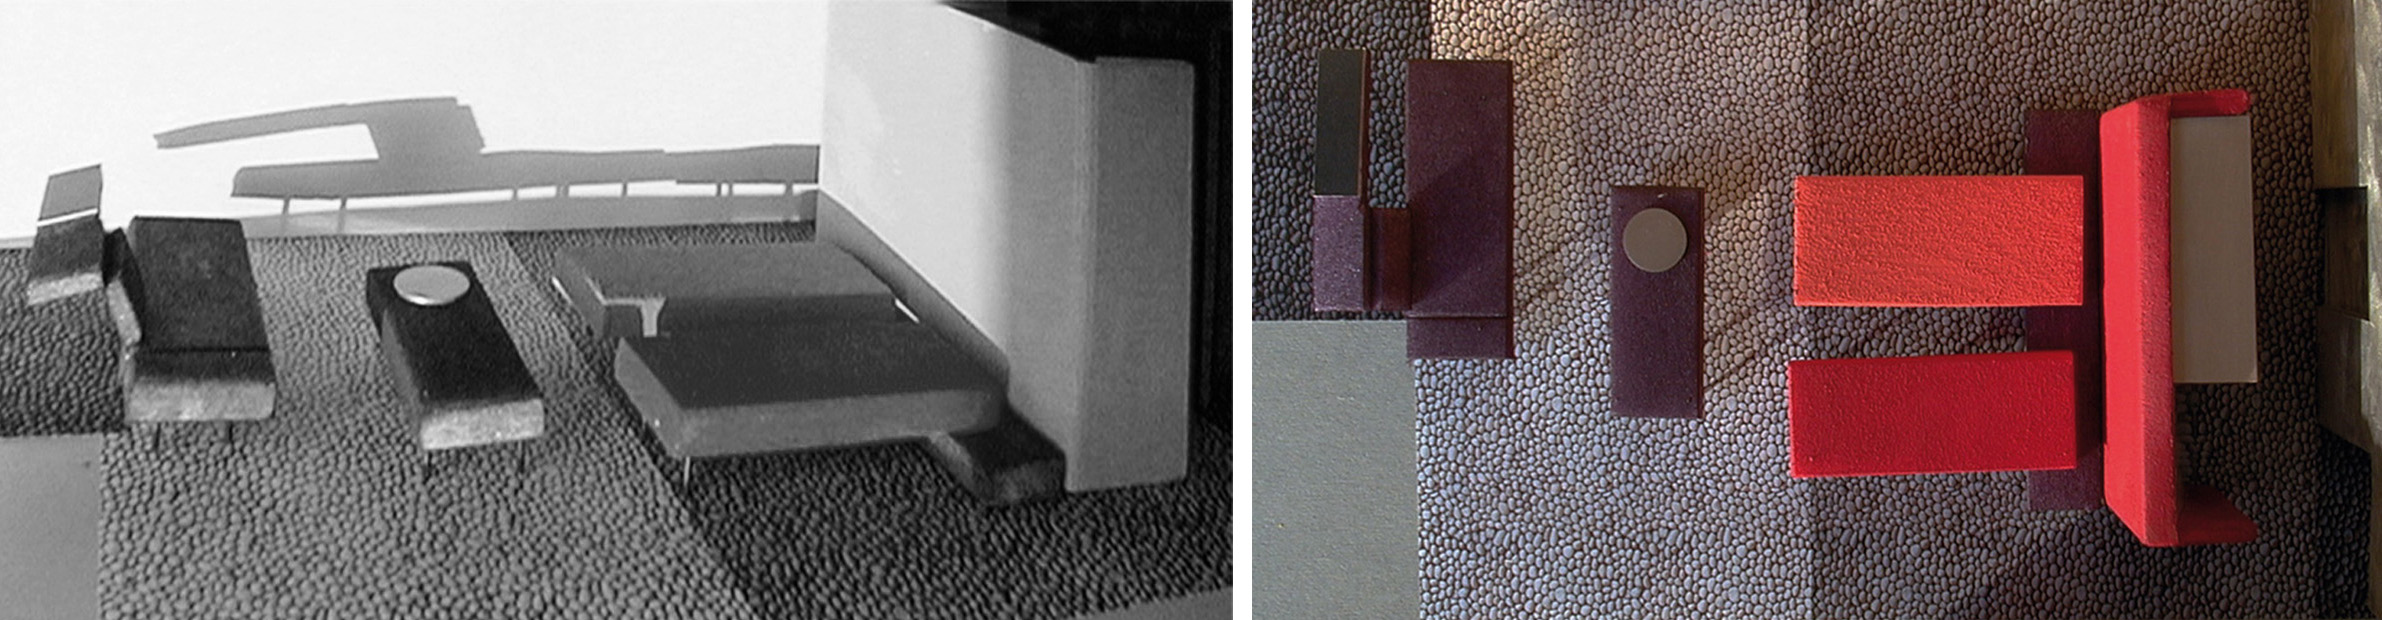 standard room study model with carpet design and colour scheme